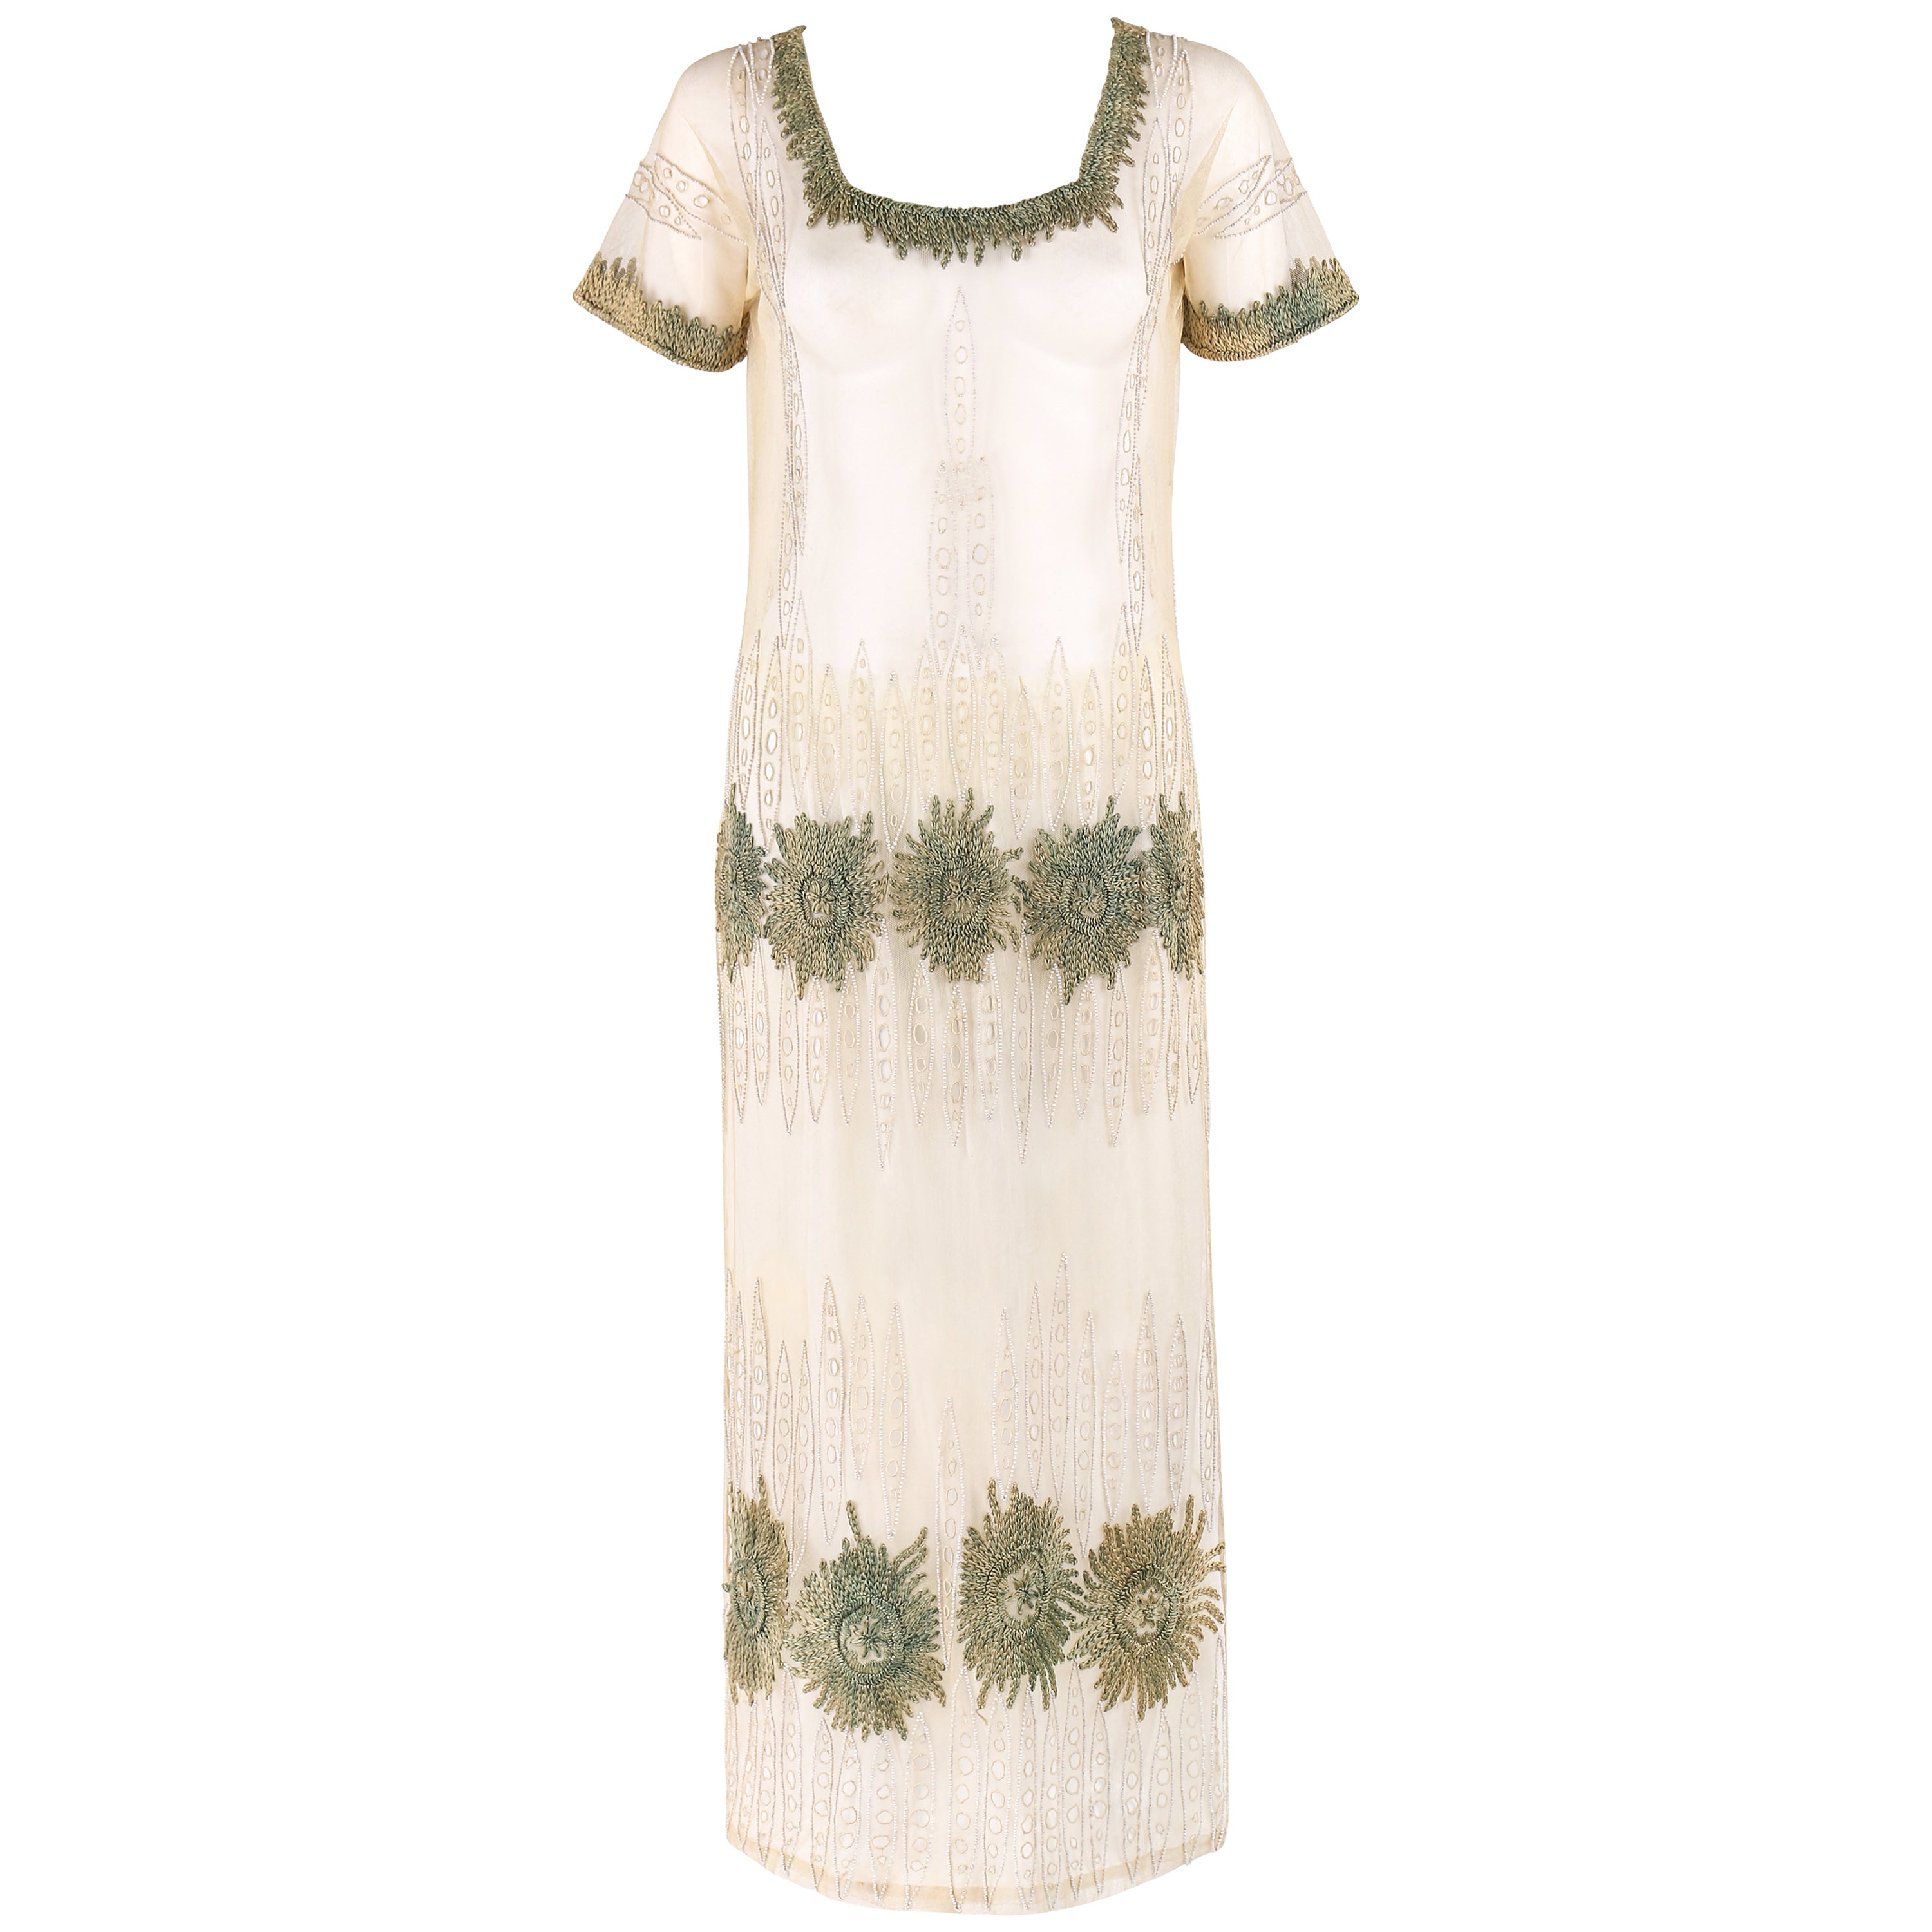 COUTURE Edwardian c.1910's Ivory Floral Embroidered Beaded Mesh Tabard Overdress